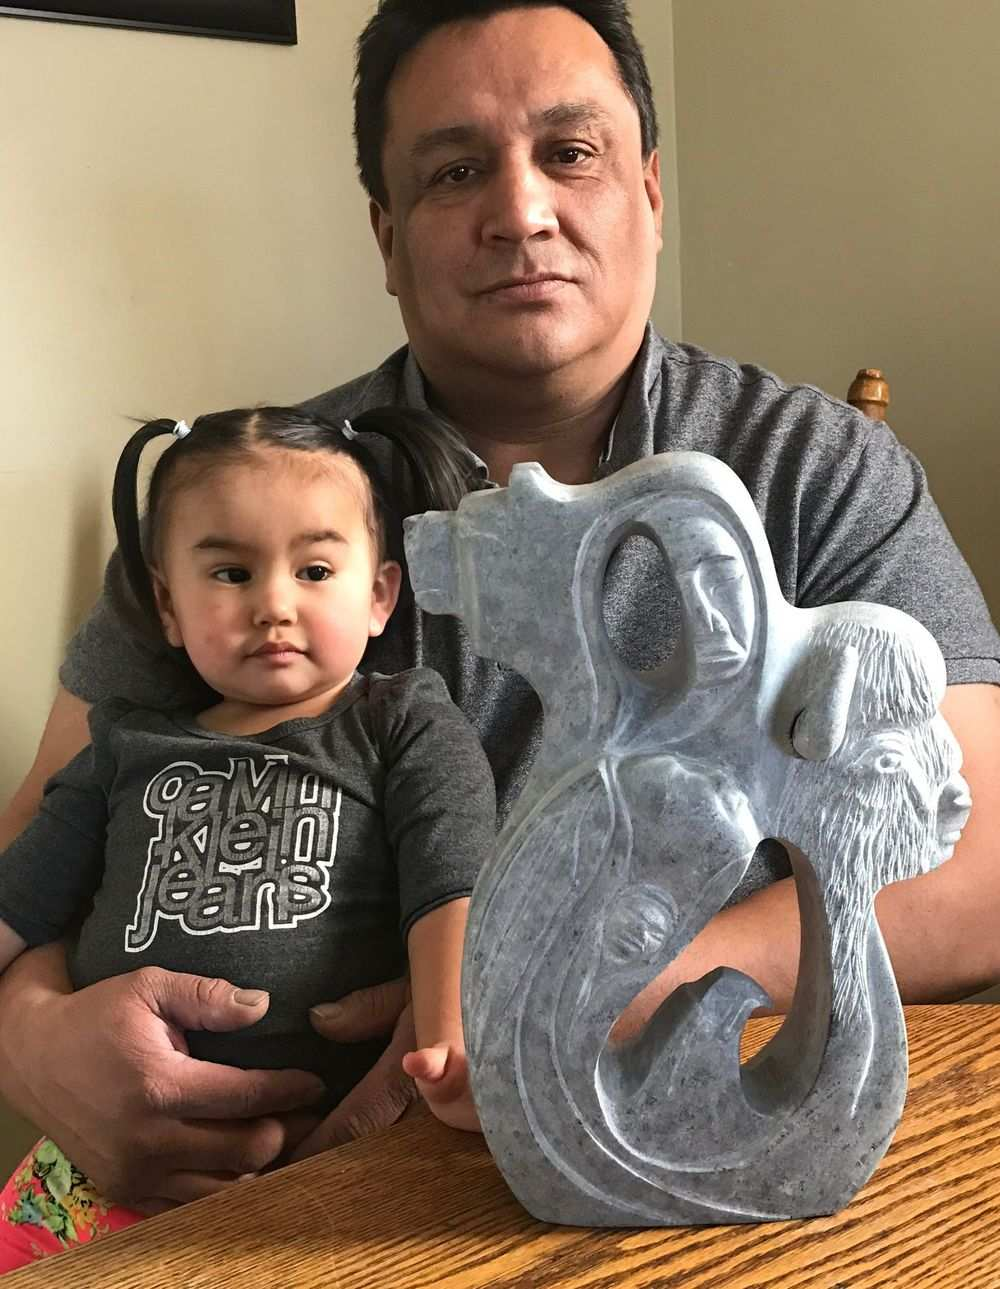 Artist Leo Arcand, from the Alexander First Nation, and his daughter, Morningstar, with a miniature model of the sculpture he'll be creating for the Capital Boulevard Canada 150 art project.